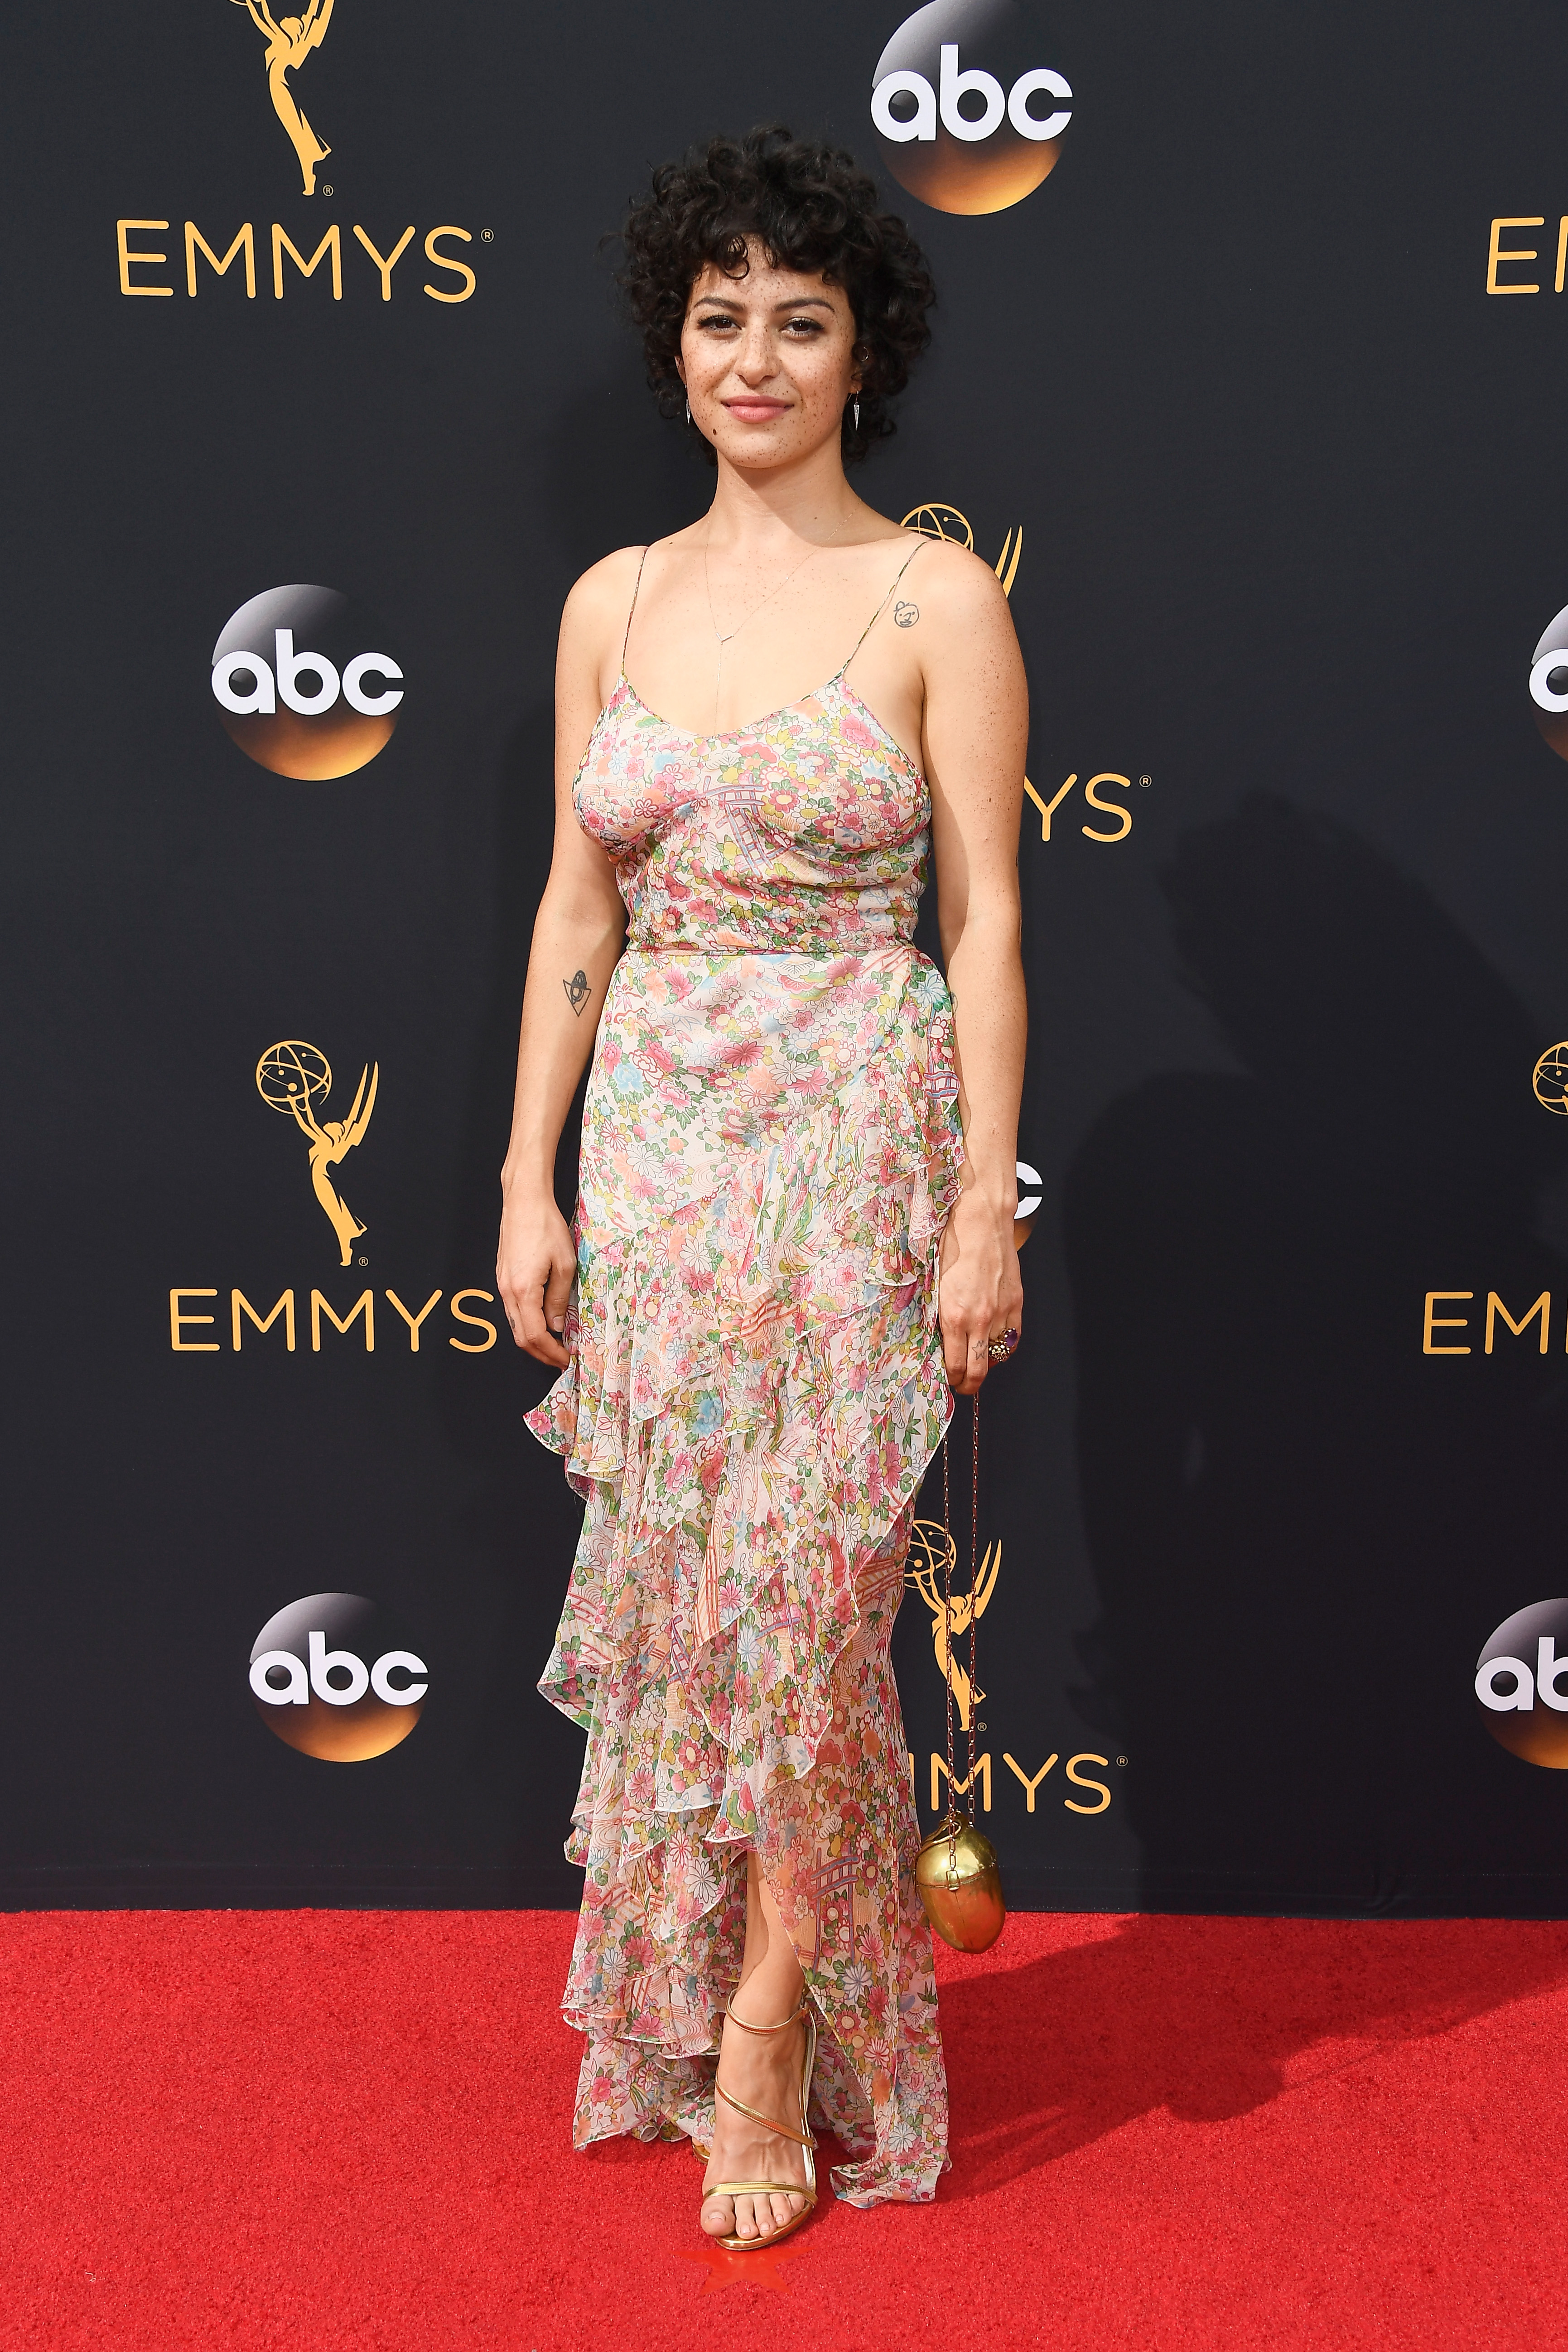 Alia Shawkat arrives at the 68th Annual Primetime Emmy Awards at Microsoft Theater on Sept. 18, 2016 in Los Angeles.